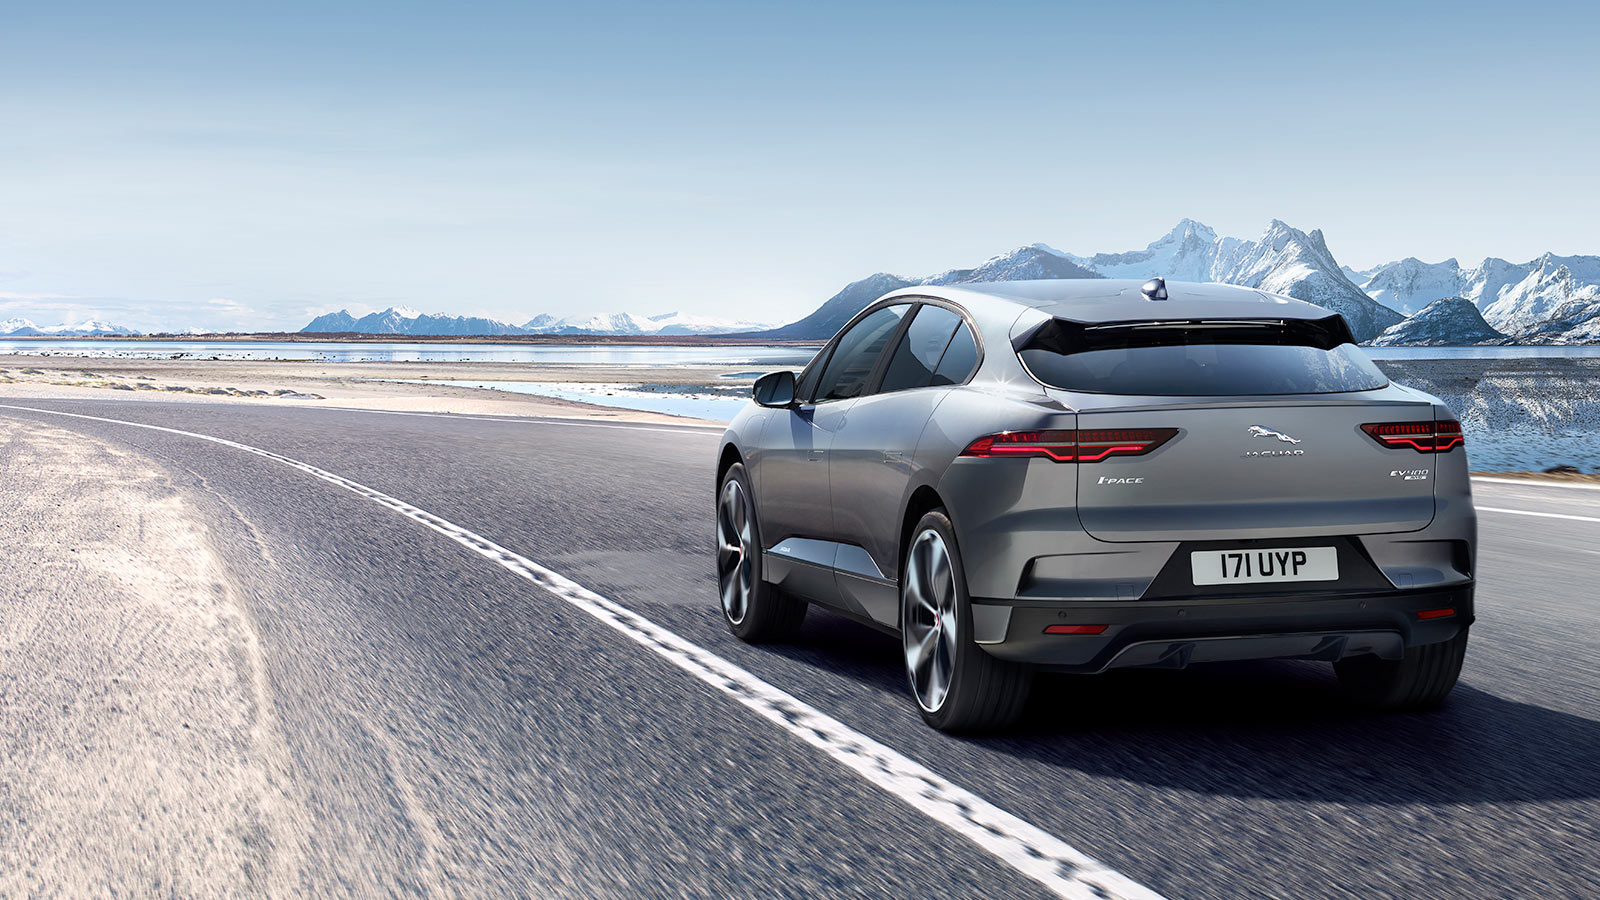 Jaguar I-Pace driving through a road surrounded by rough terrain.